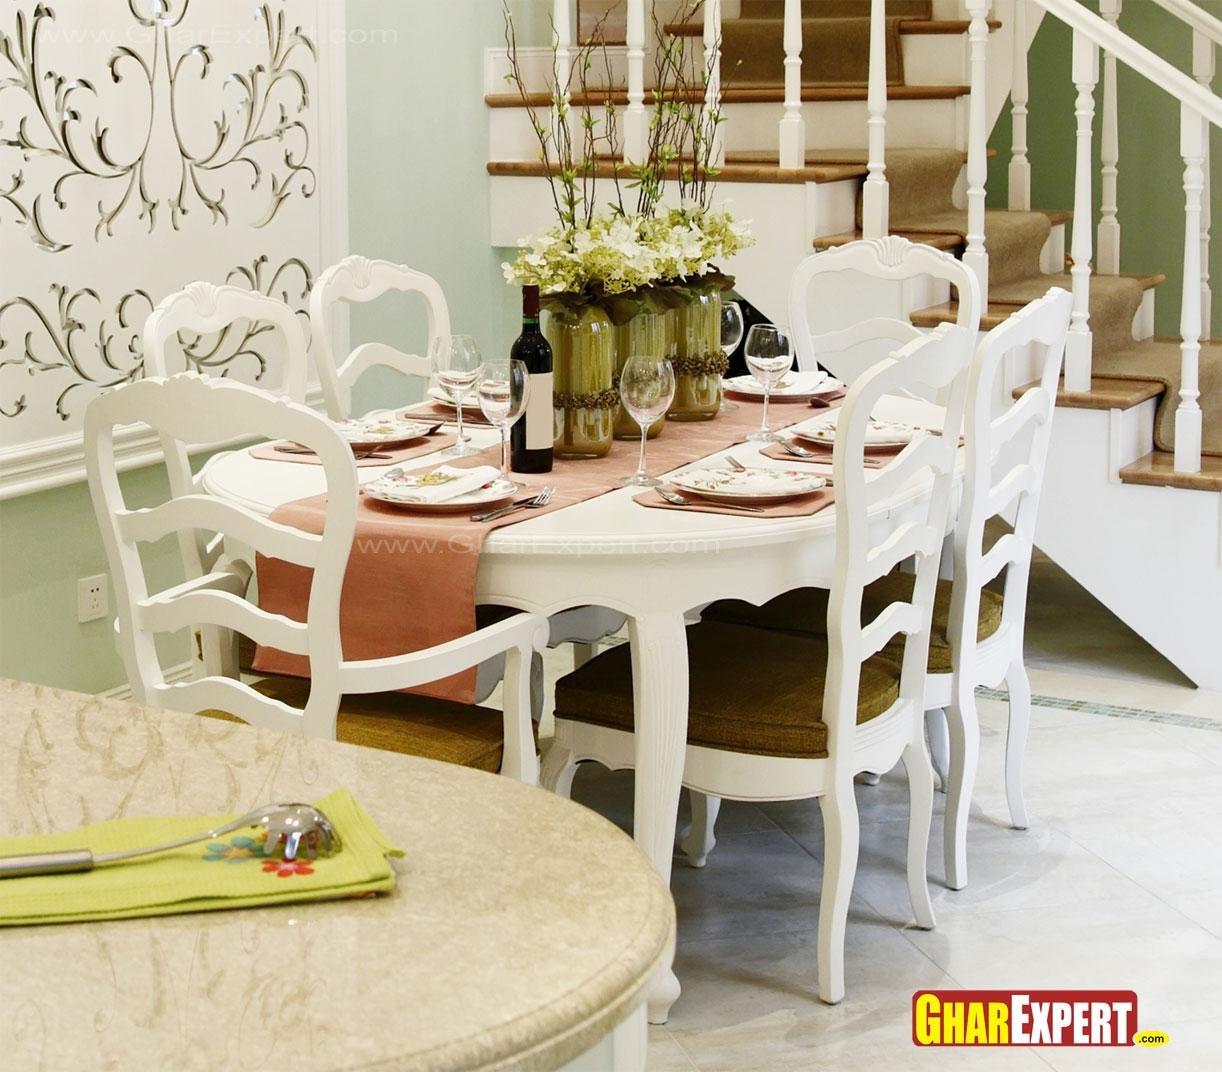 6 seater Wooden dining in whit....